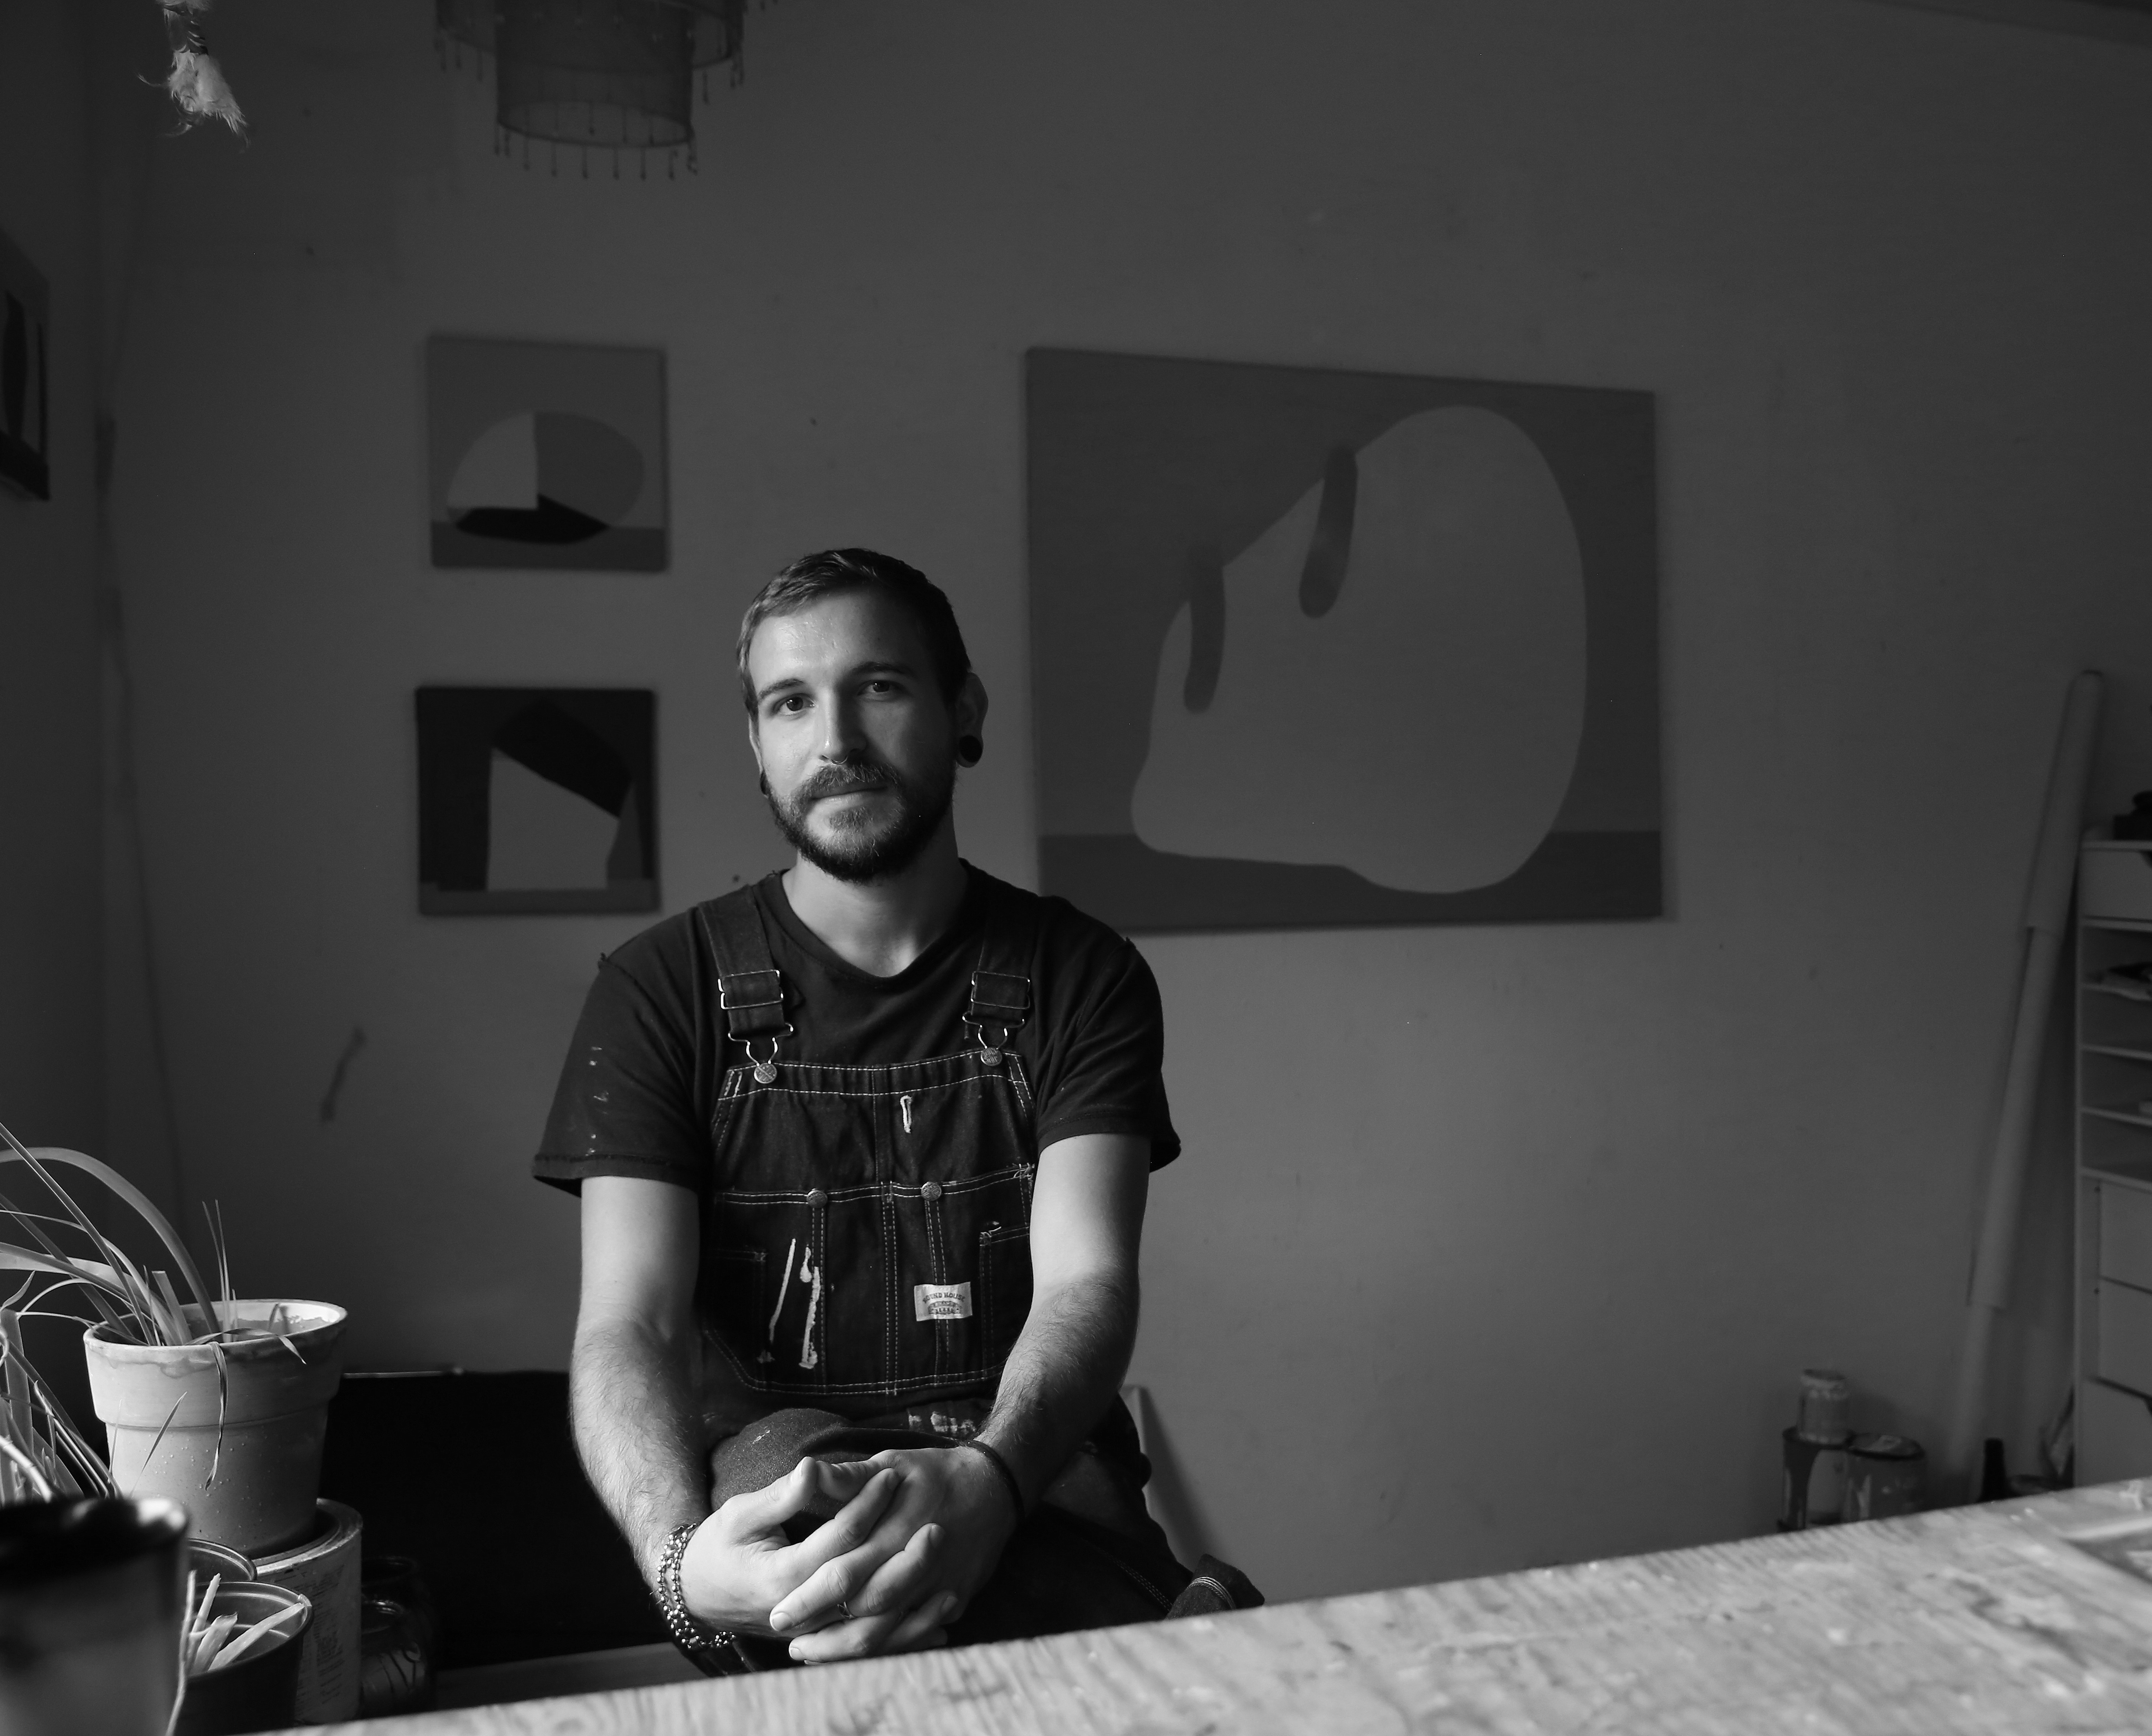 A person wearing overalls sits in a studio with abstract art on the walls